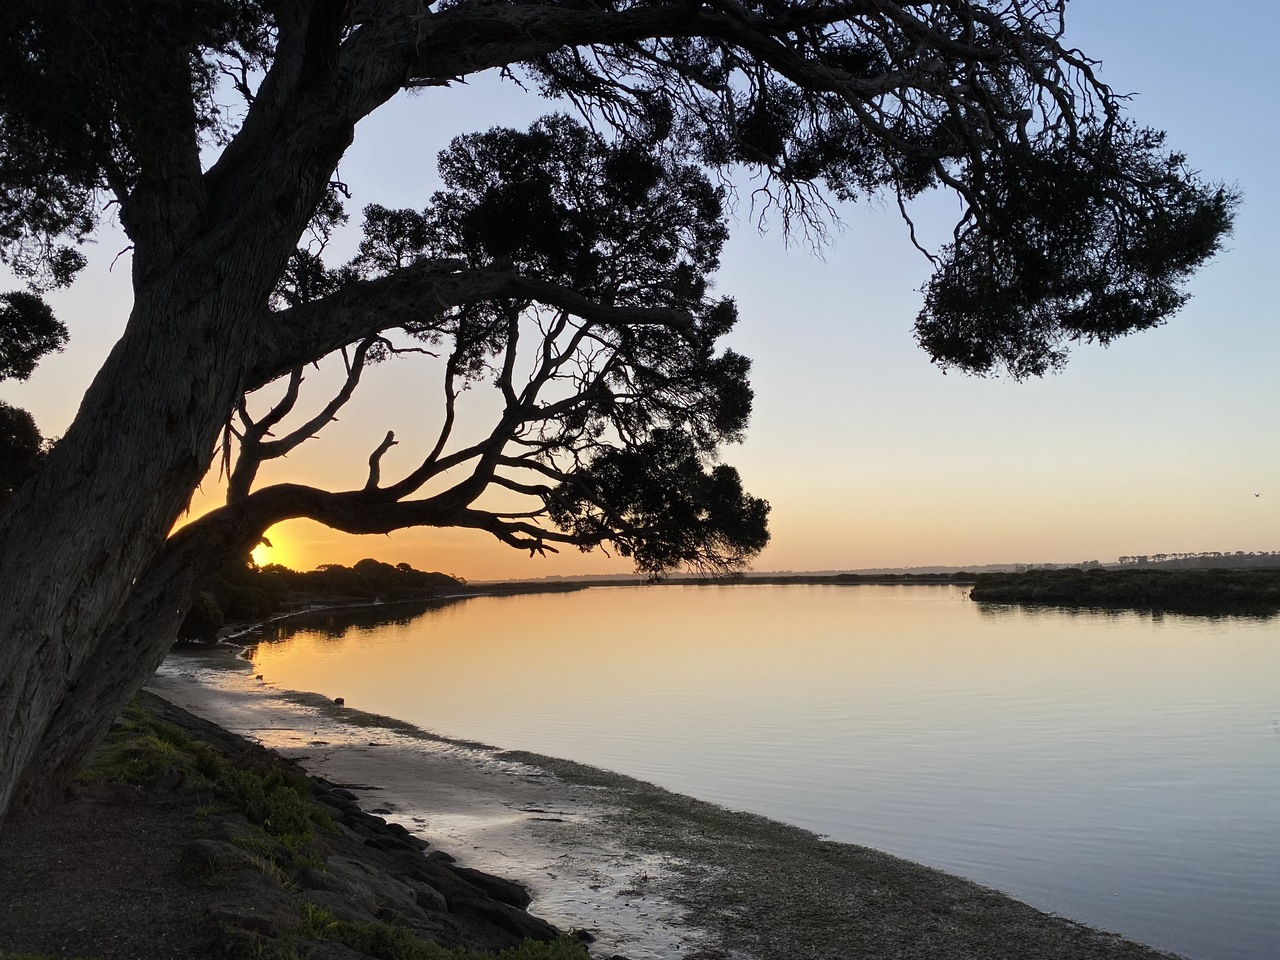 Ros Bandt and Vicki Hallett – Listening to the Barwon River in Australia